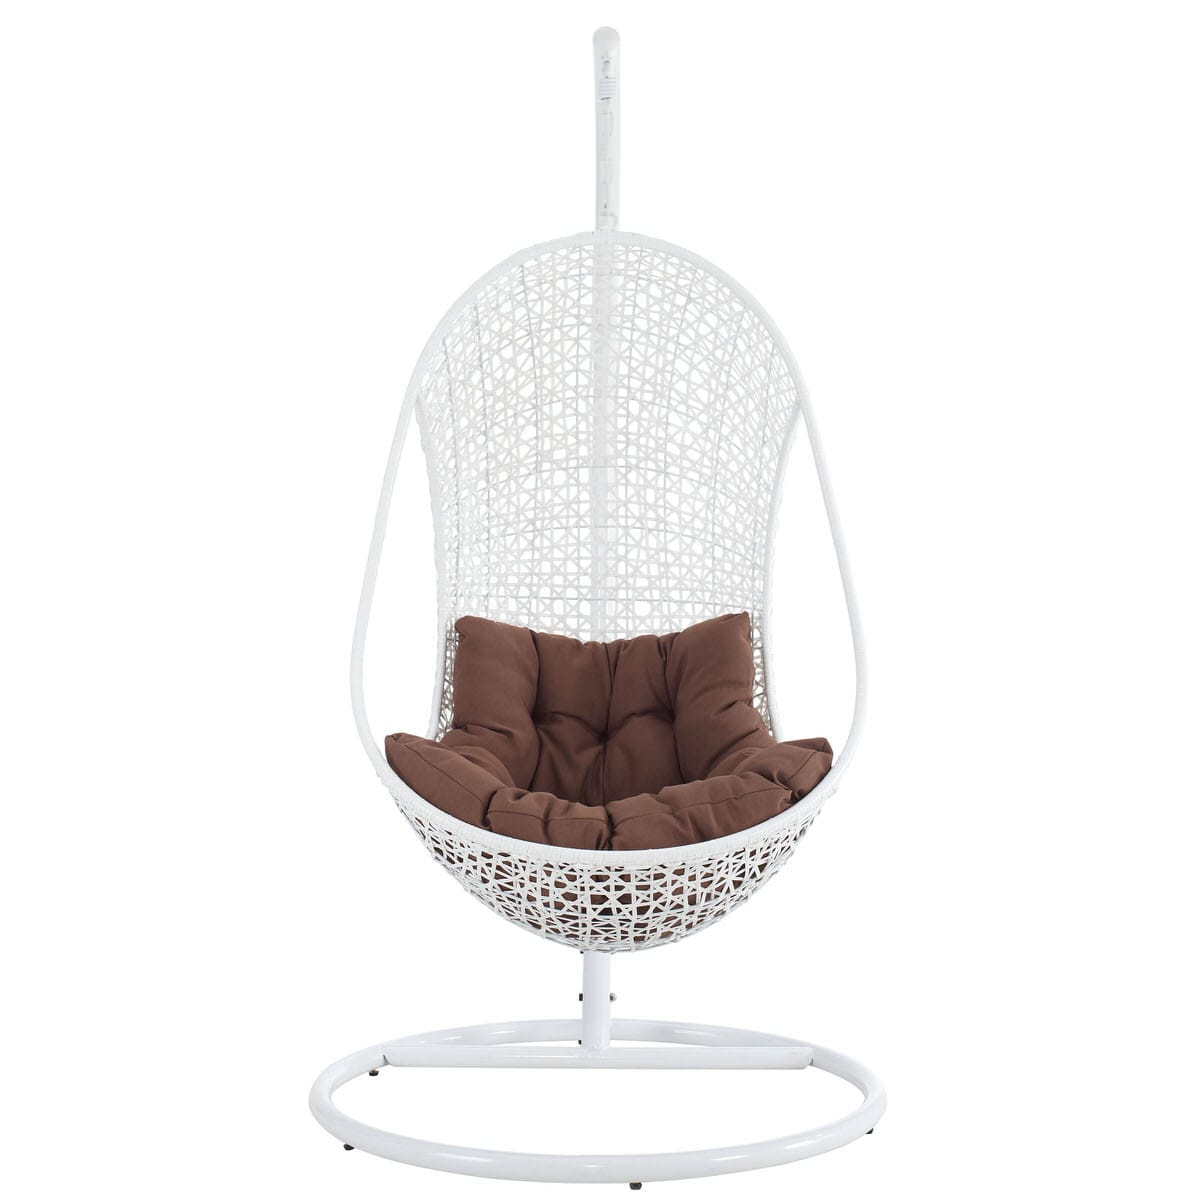 Remarkable Bestow Swing Outdoor Patio Lounge Chair White Brown By Modern Living Onthecornerstone Fun Painted Chair Ideas Images Onthecornerstoneorg